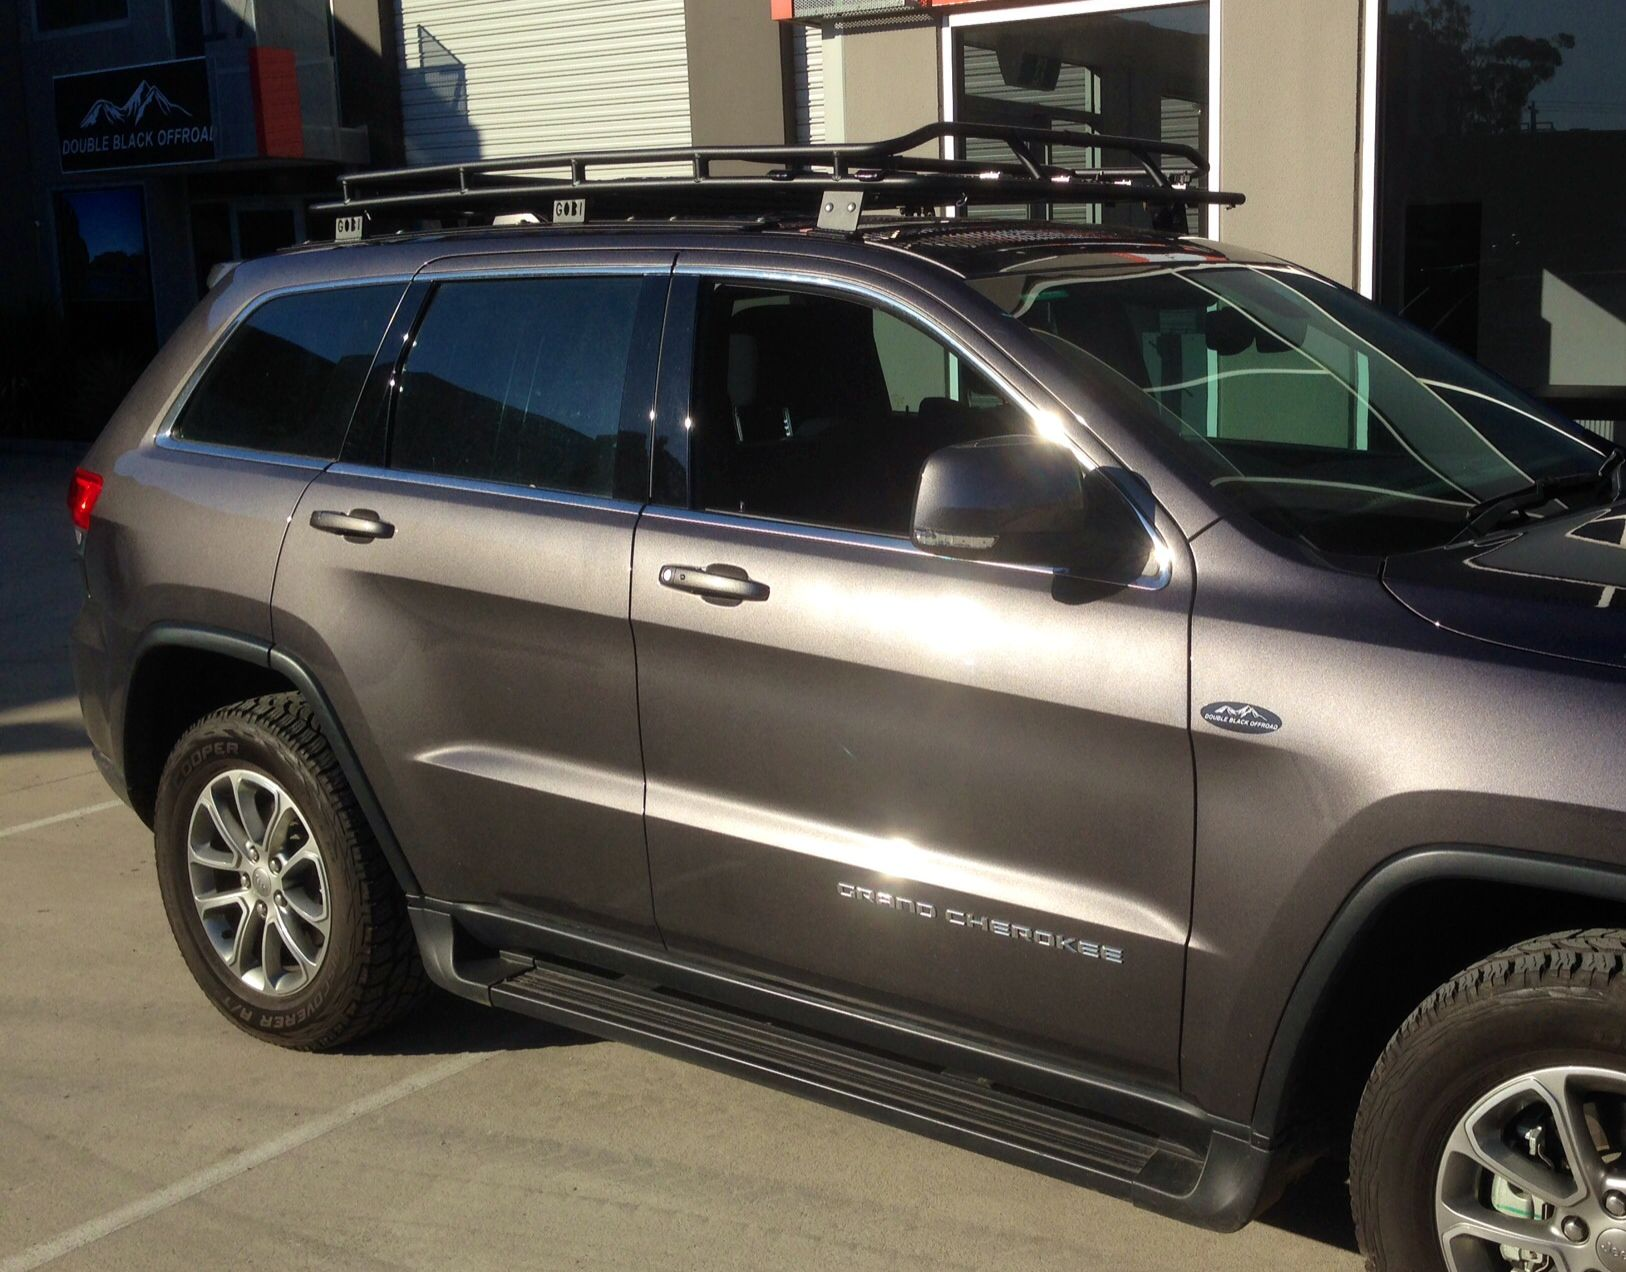 Gobi Jeep Grand Cherokee Stealth Roof Rack 2017 Wk2 Free Ladder Wind Deflector Shipping Order This An